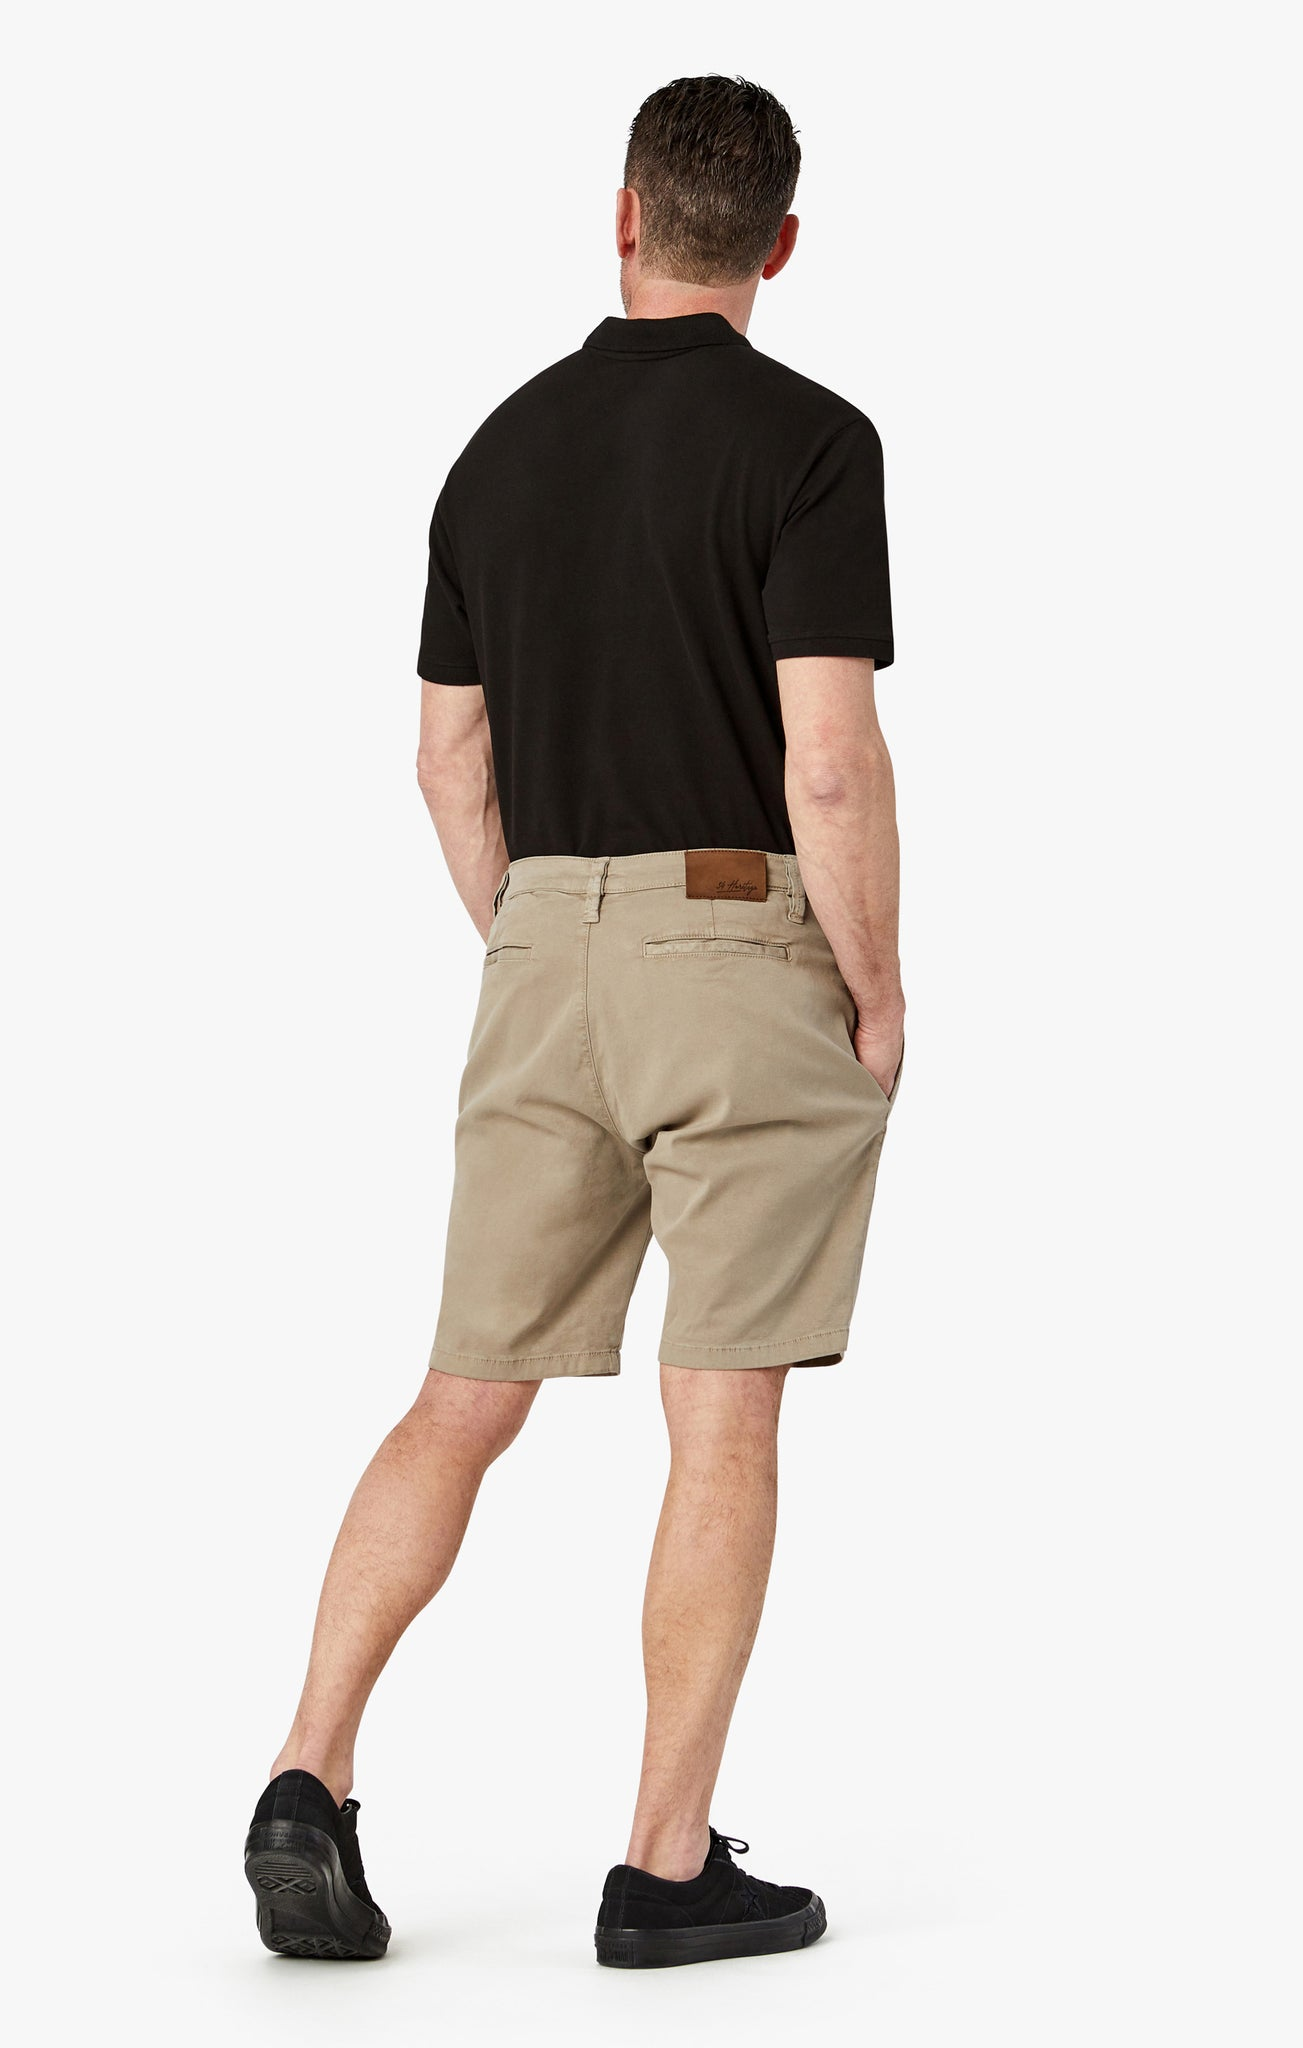 Nevada Shorts in Mushroom Soft Touch